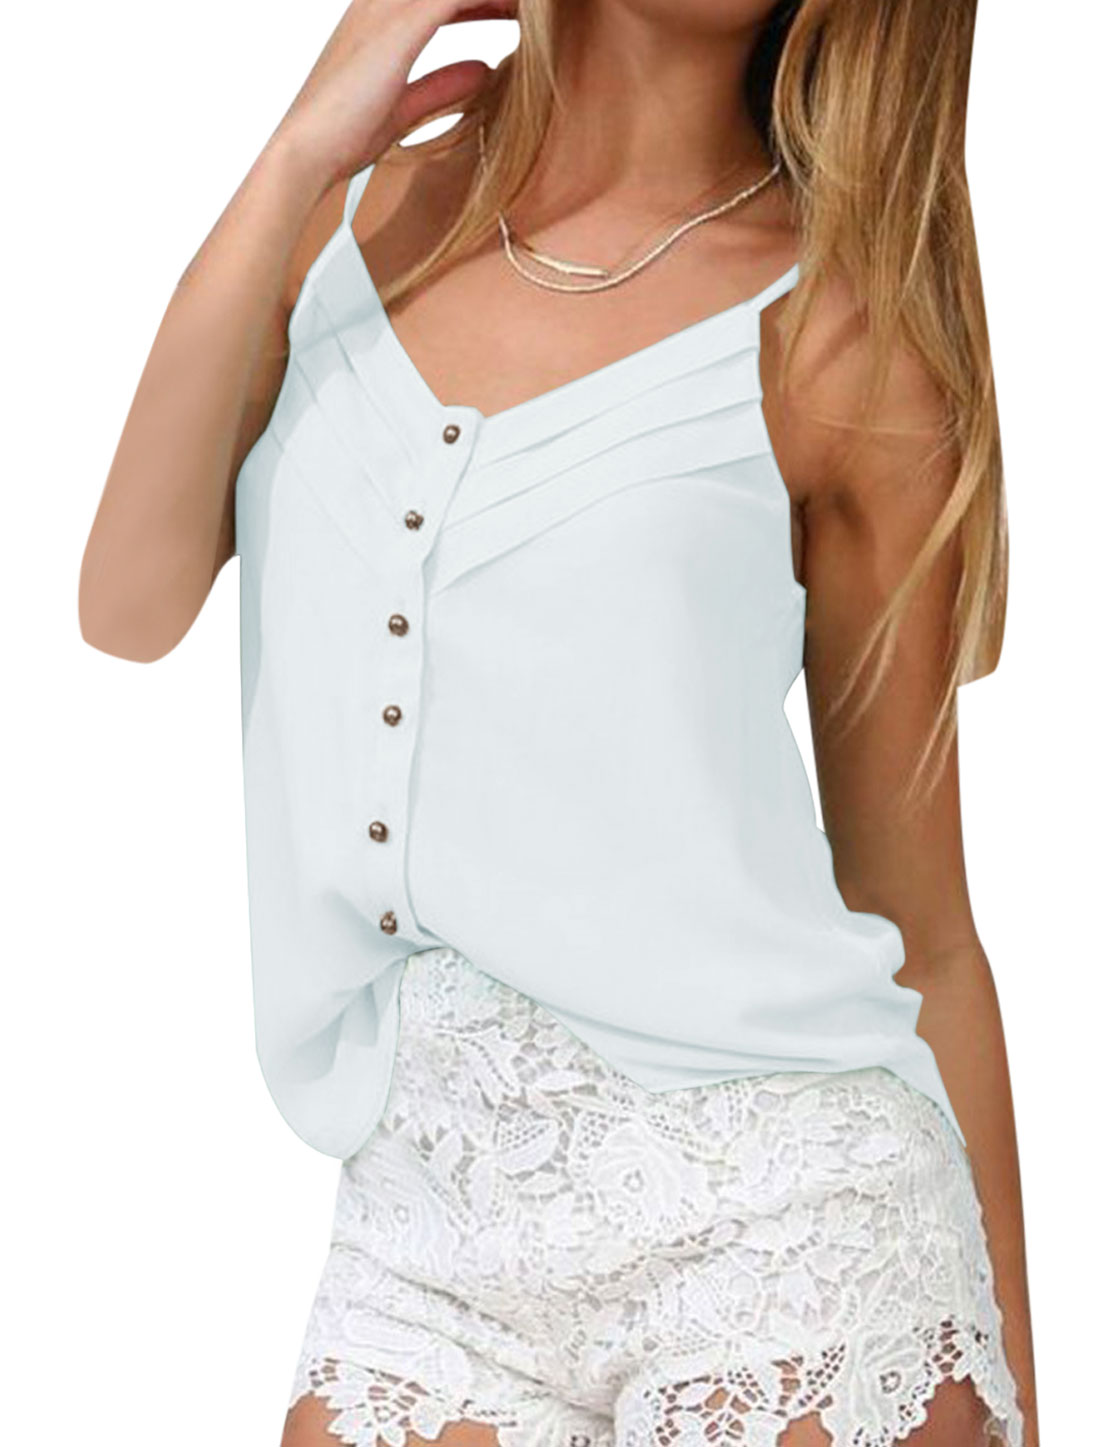 Lady Adjustable Spaghetti Strap Single Breasted Semi Sheer Cami Top White XS